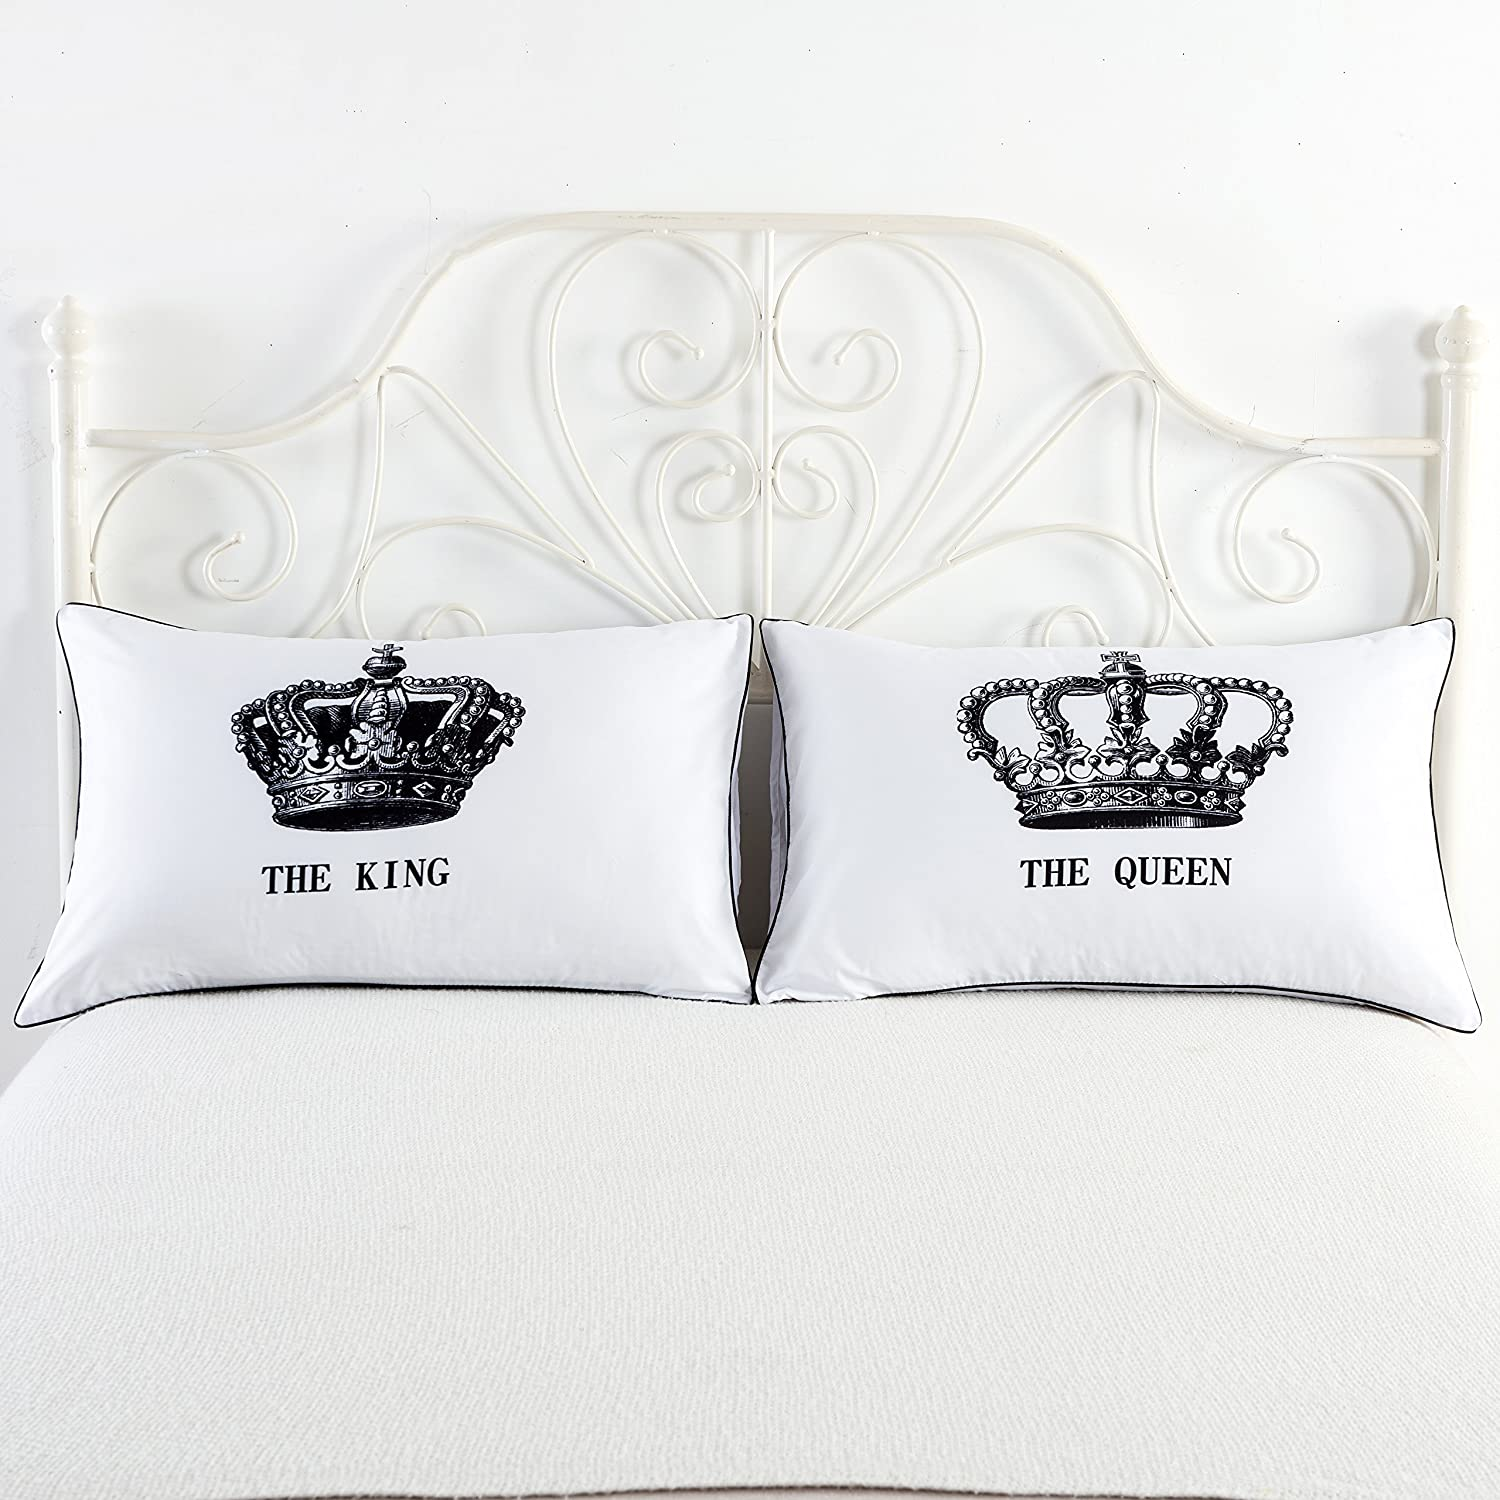 Amazon.com: King and Queen Couples Pillow Cases,His Hers Pillowcases ...